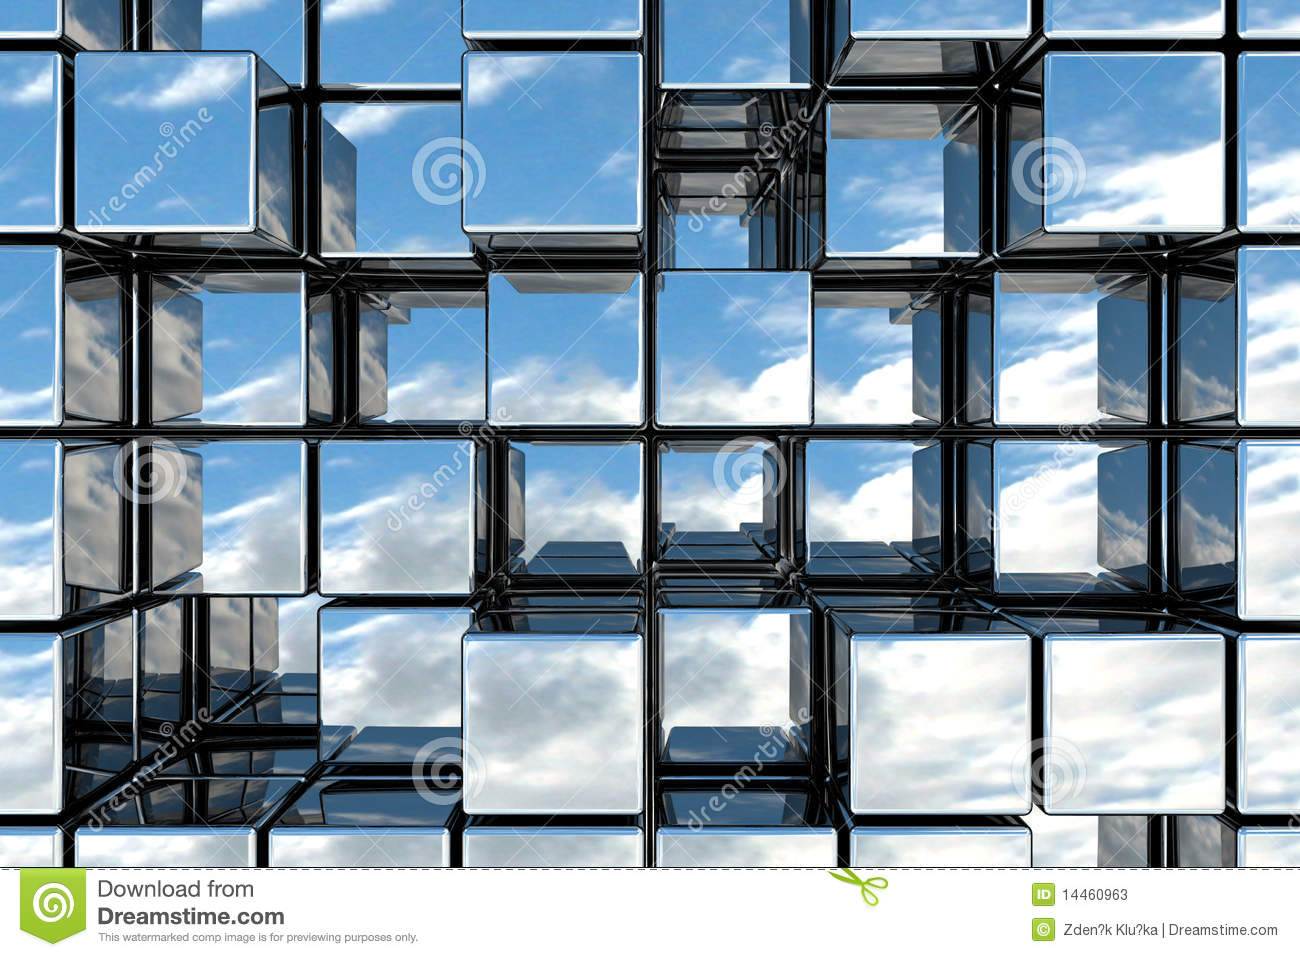 Cubic space stock photos image 14460963 for Cubi spaceo